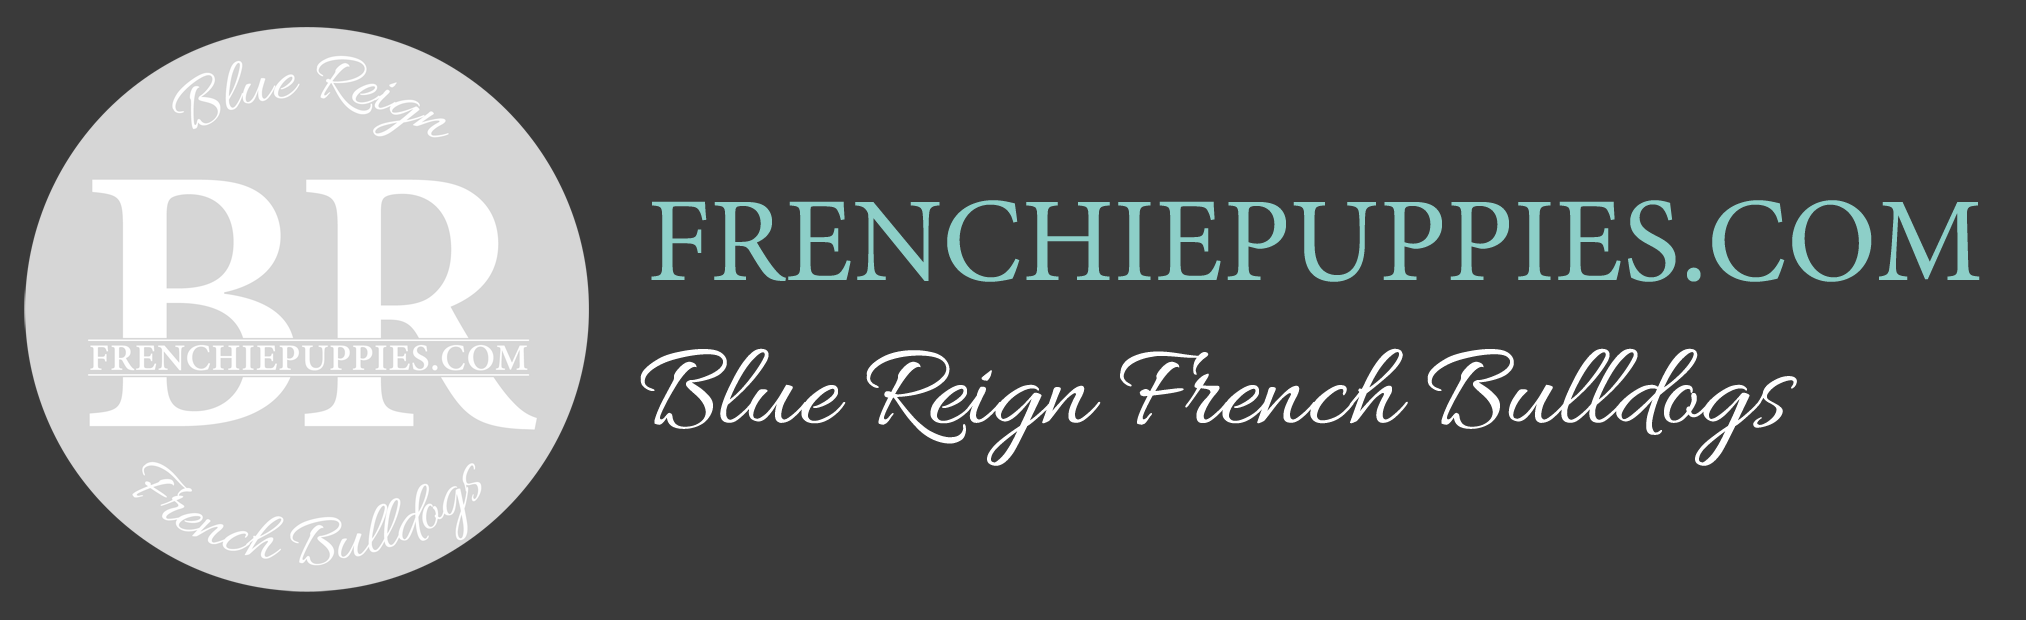 FRENCHIEPUPPIES.COM